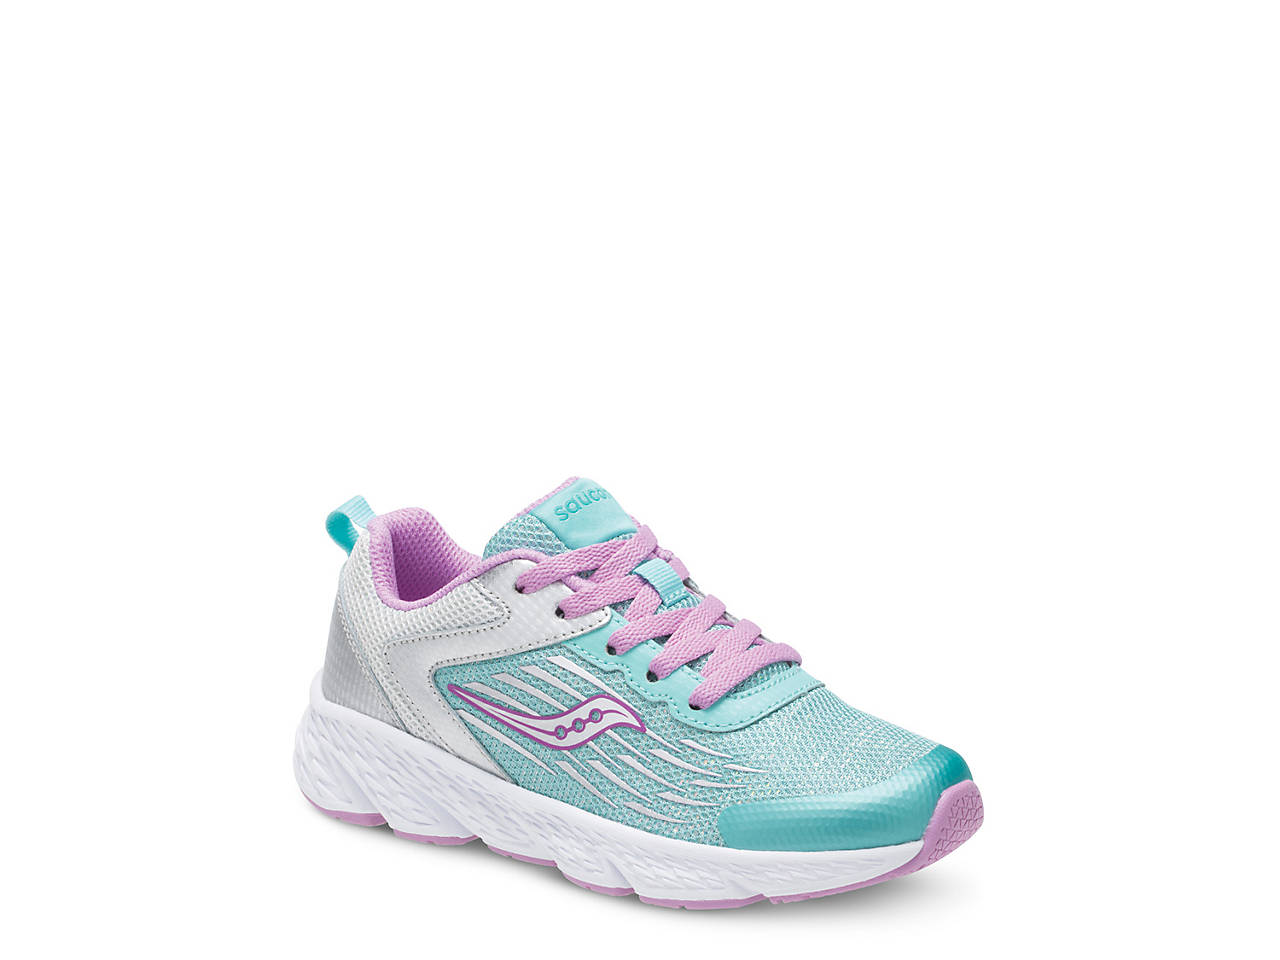 b503d9d816 Wind Toddler & Youth Sneaker